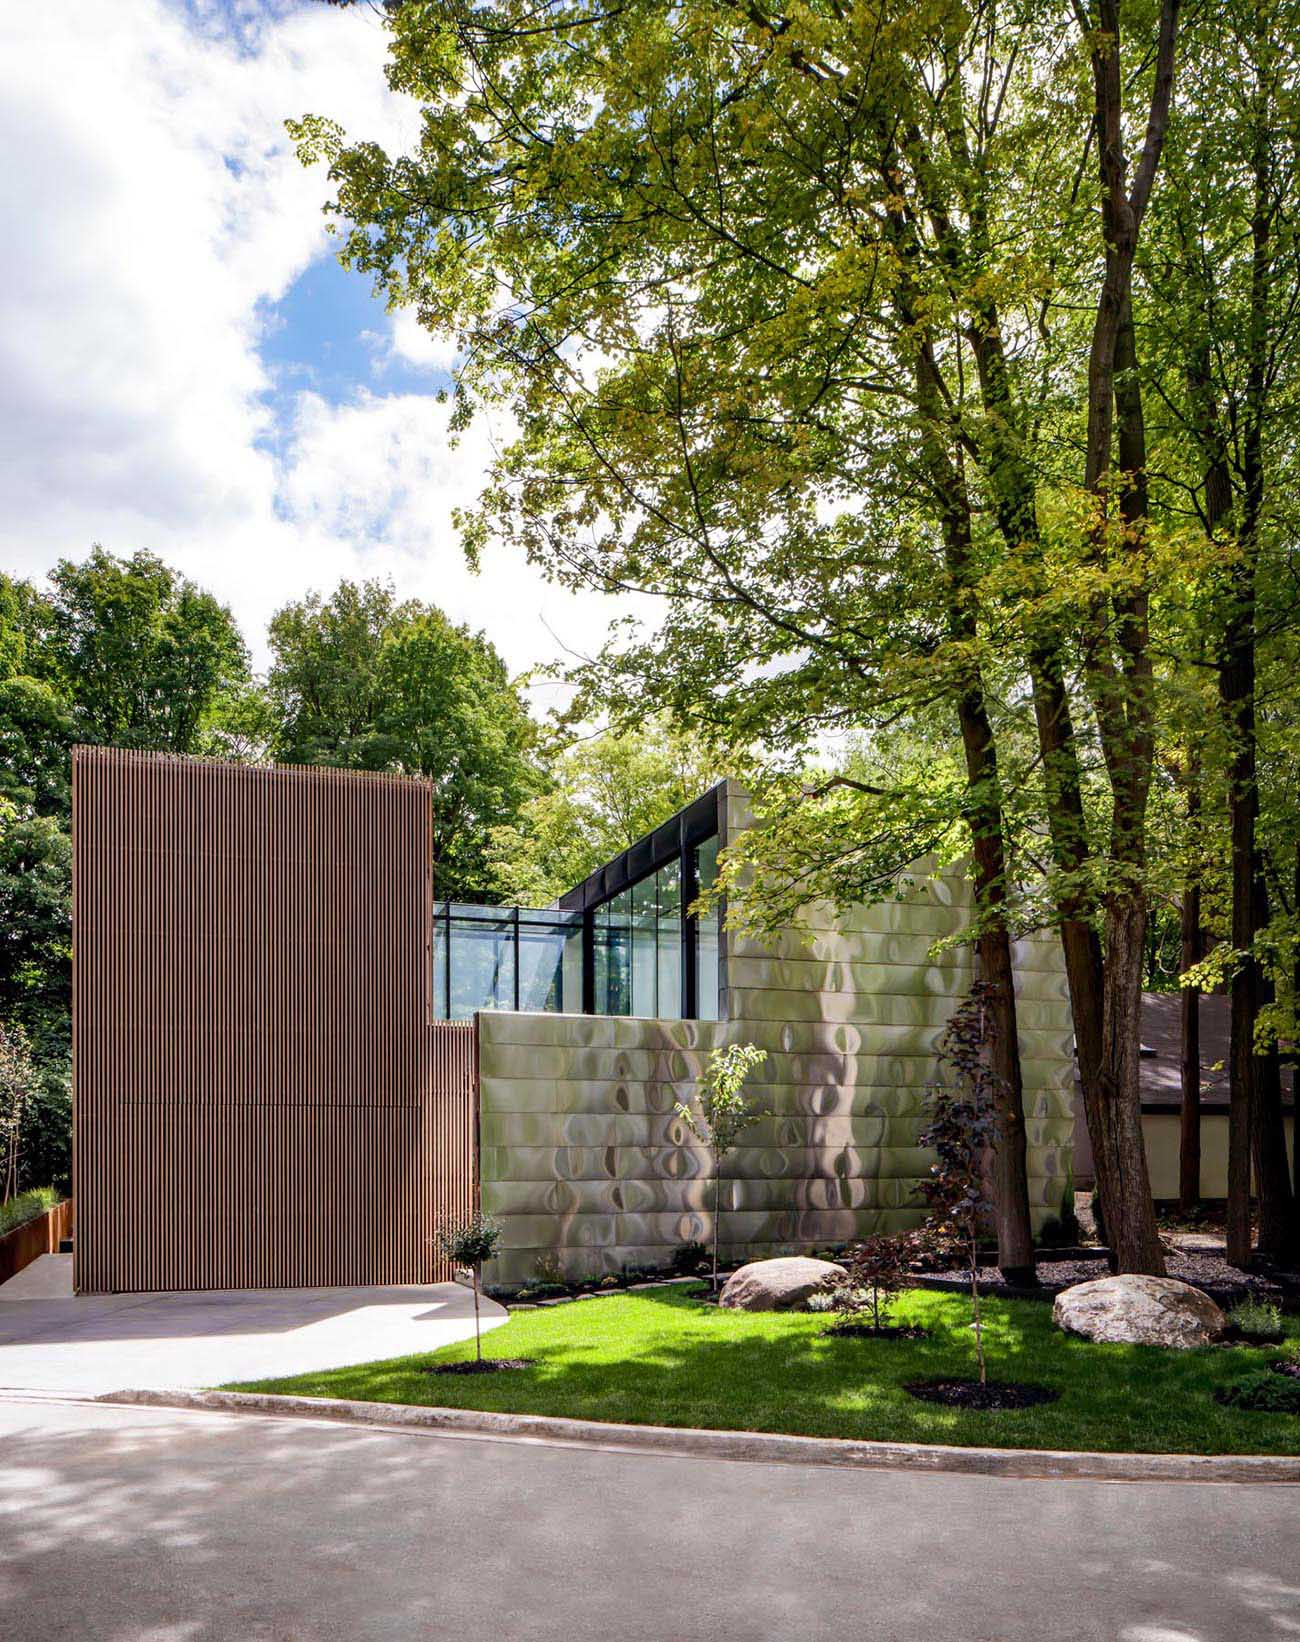 The design of this modern house includes a solid front facade, with a tucked away entryway, that afforded the client the privacy they desired.